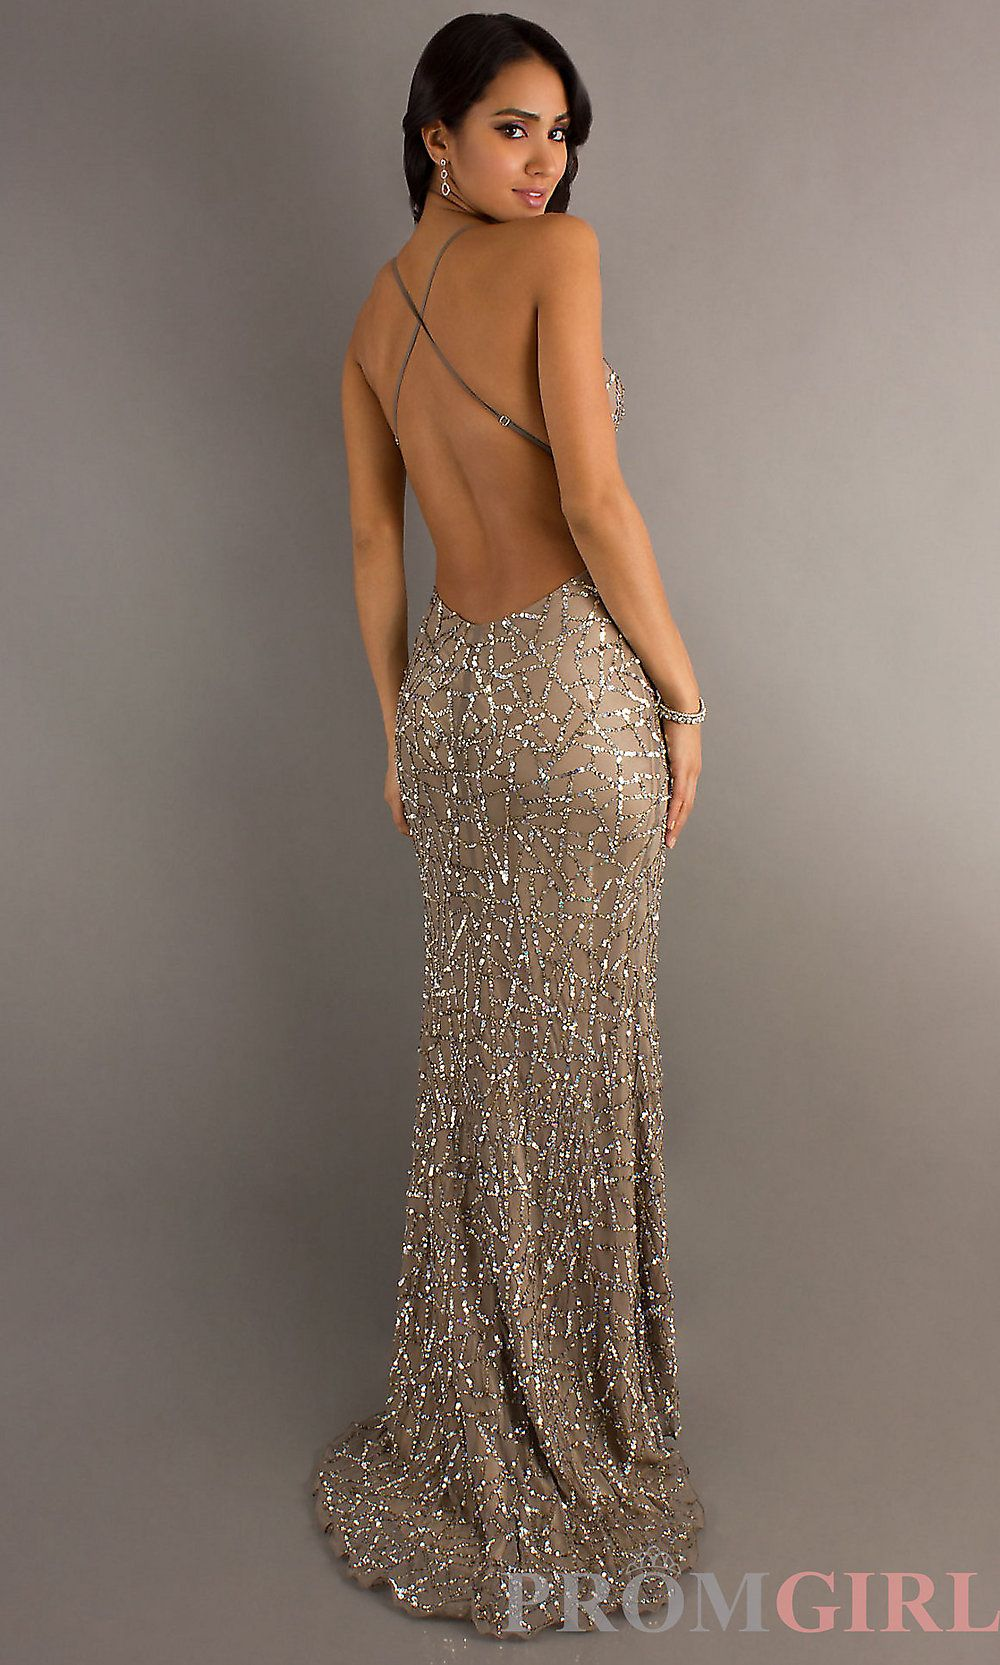 Backless sequin gowns scala open back prom dresses promgirl prom